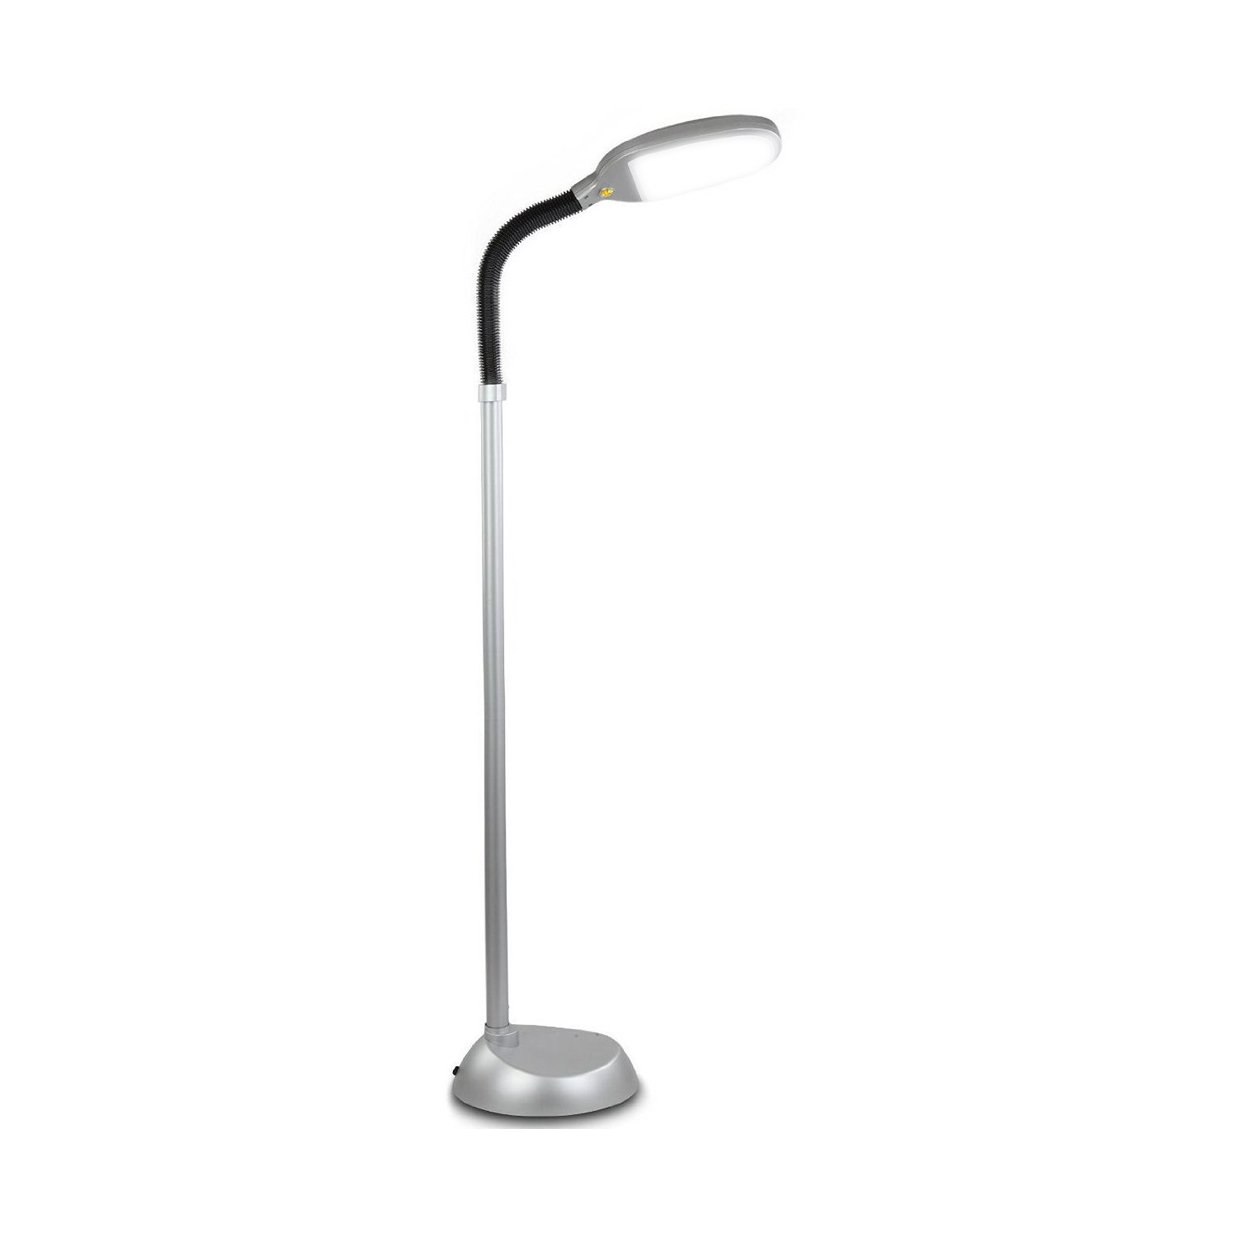 Brightech Litespan LED Bright Reading and Craft Floor Lamp - Modern Standing Pole Light - Dimmable, Adjustable Gooseneck Task Lighting Great in Sewing Rooms, Bedrooms – Titanium Silver